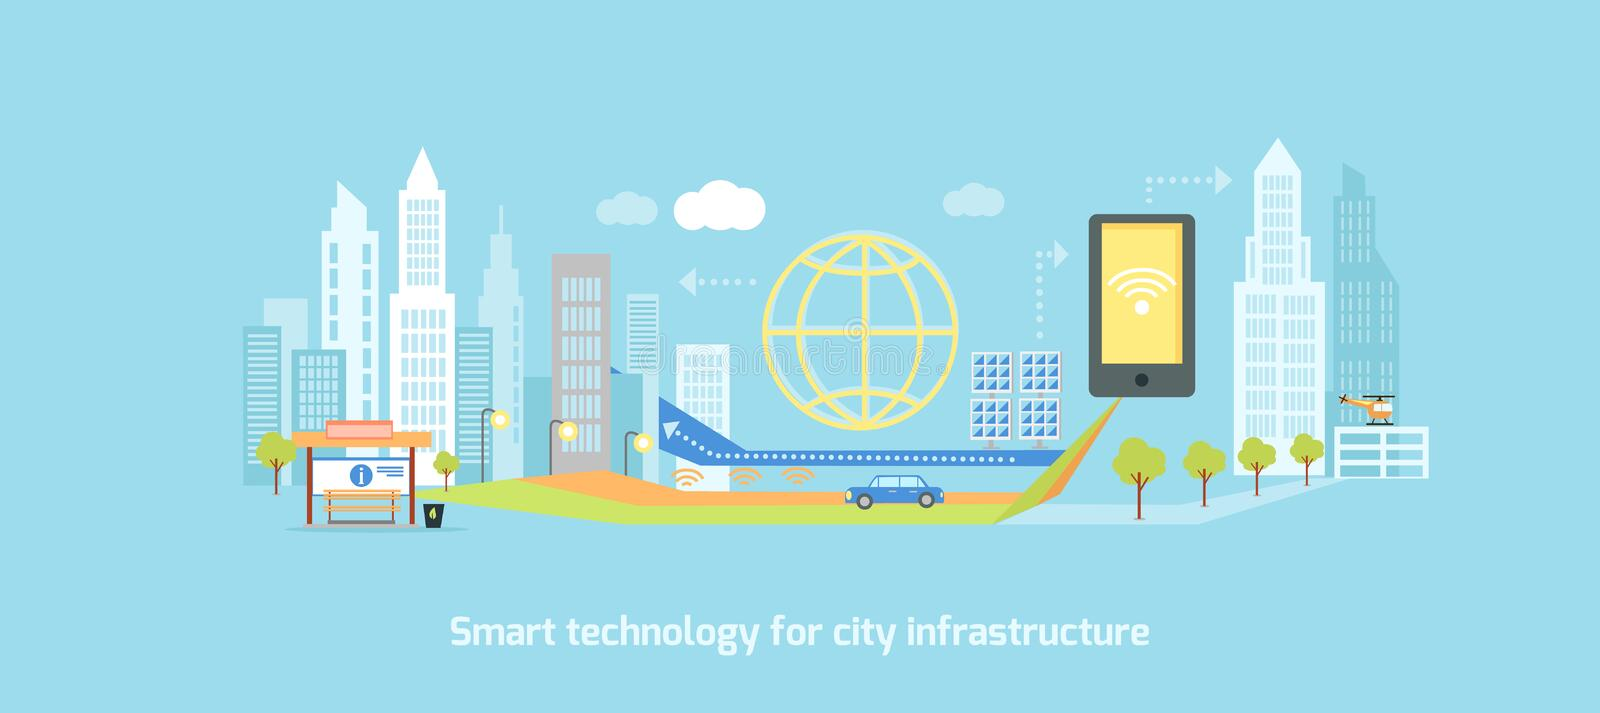 Smart Technology in Infrastructure of City. Smart technology in infrastructure of the city. Icon and network system, communication innovation town, connection vector illustration